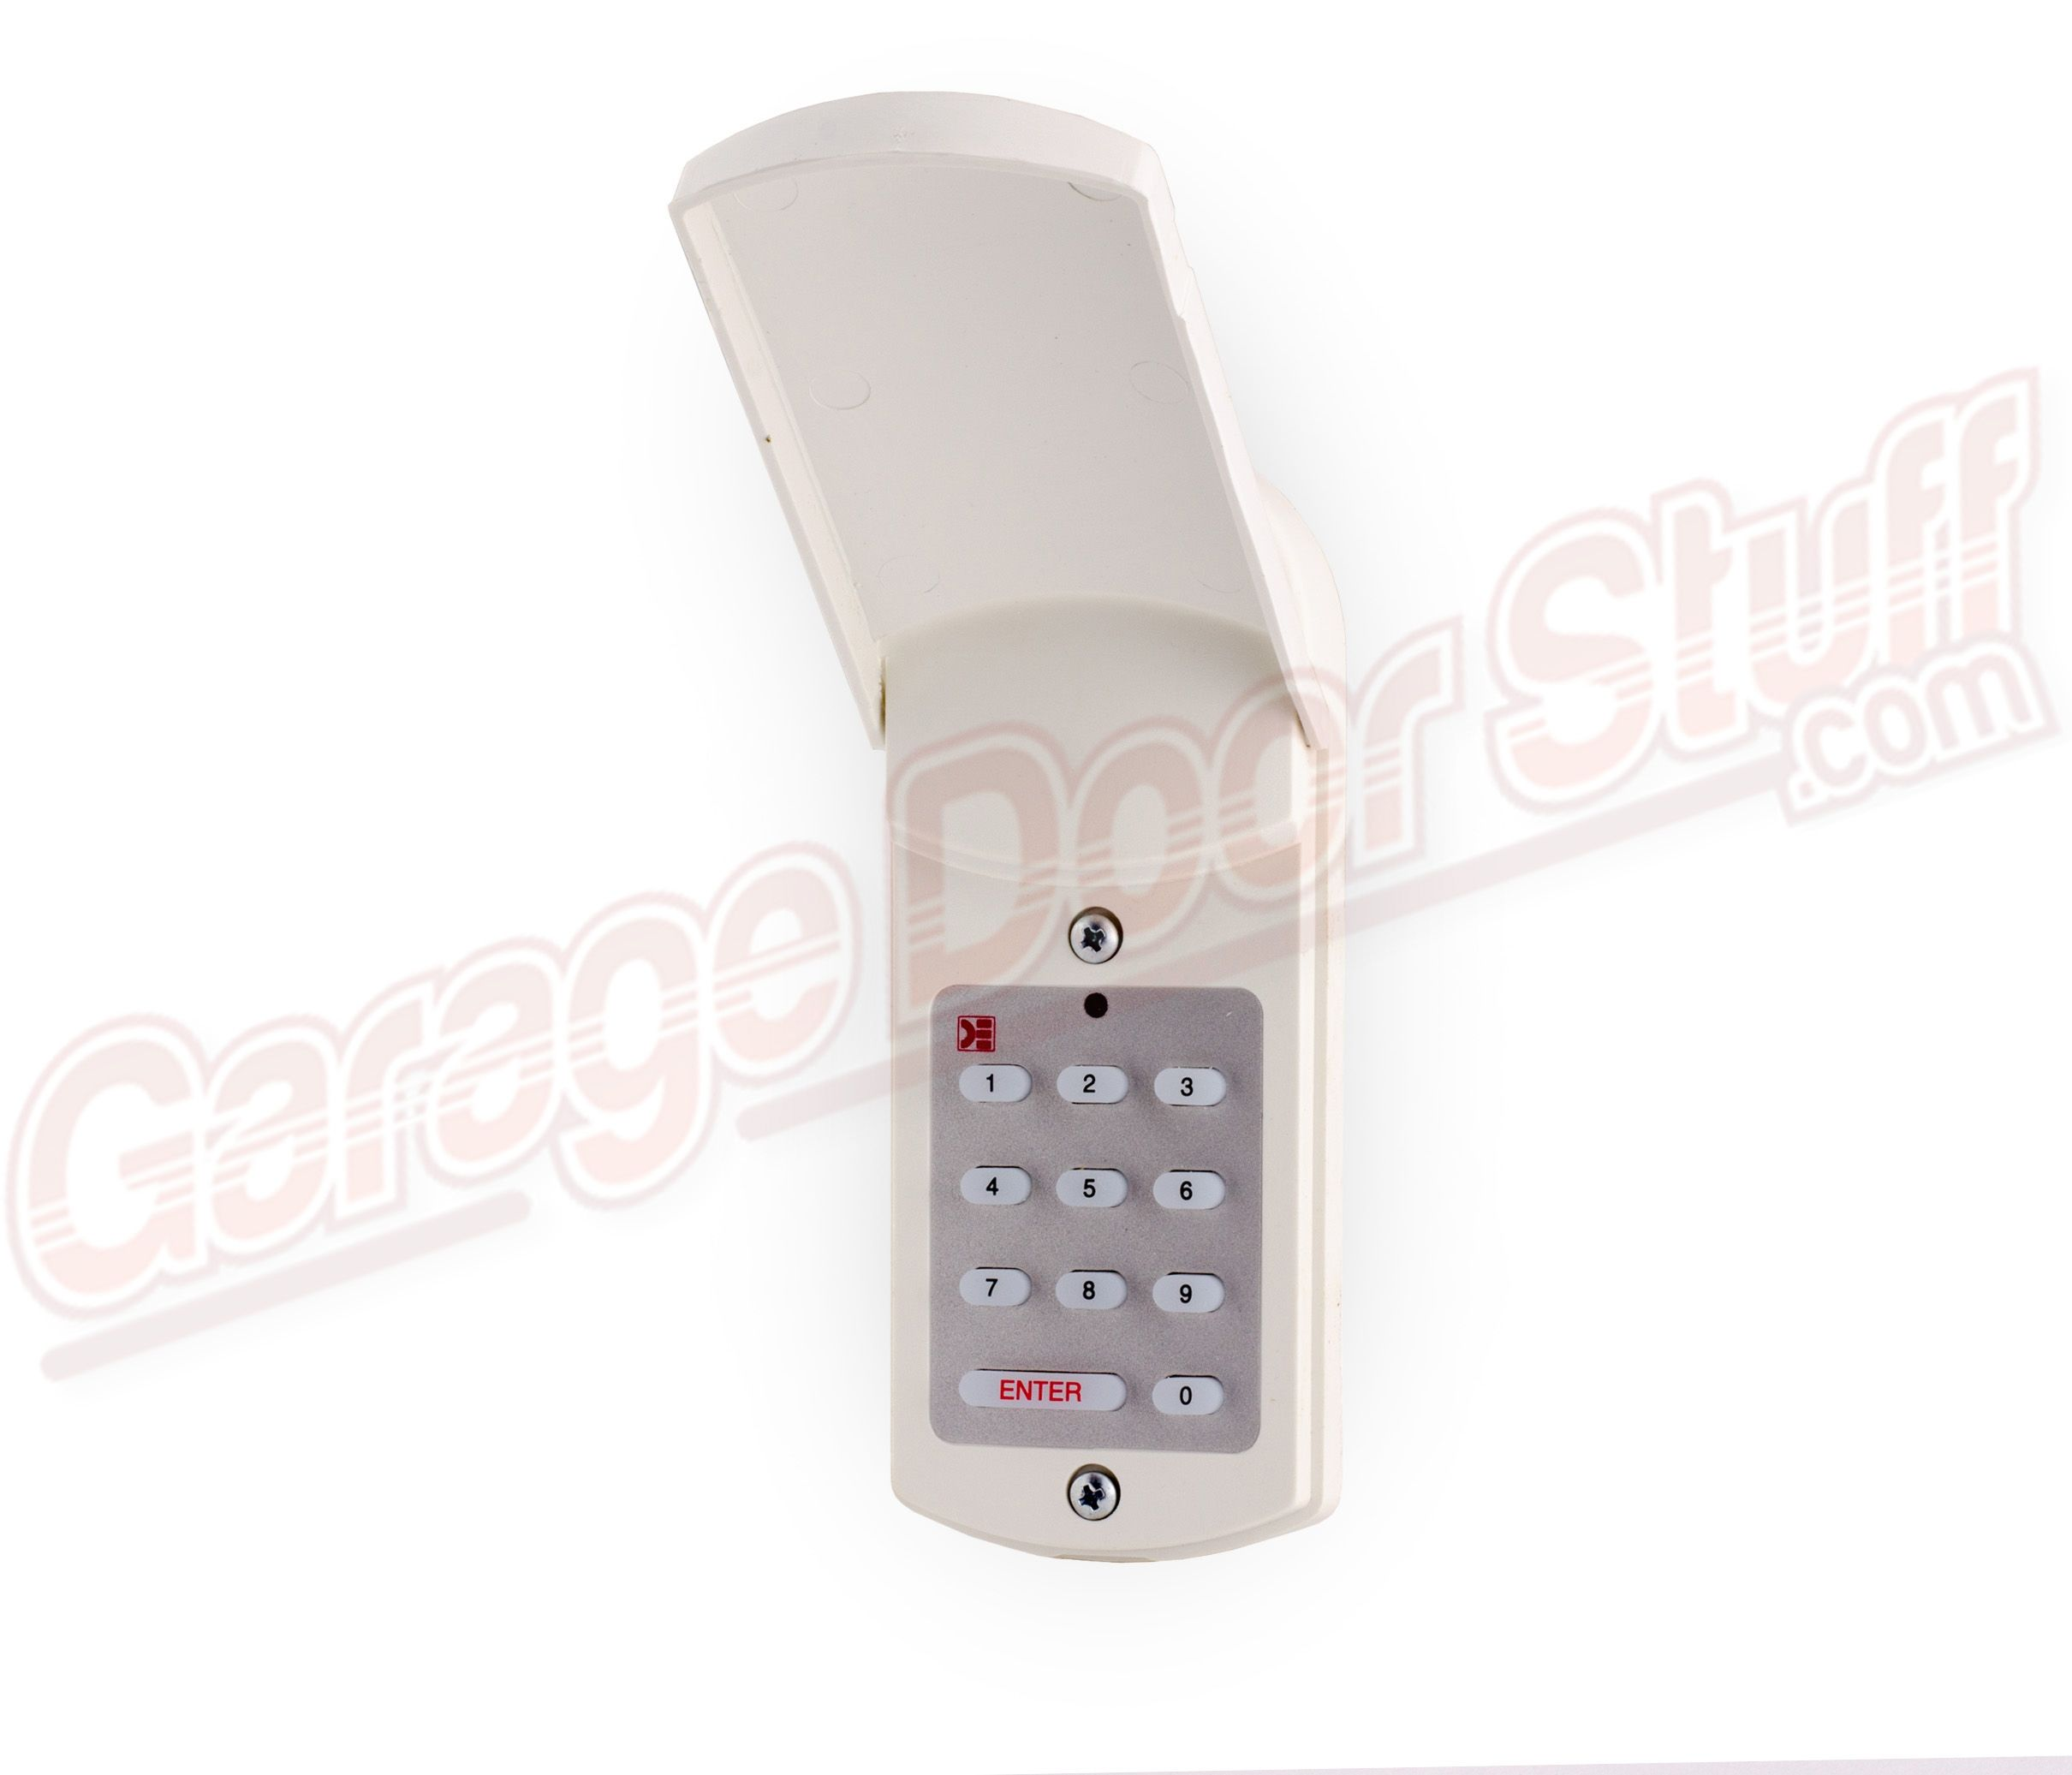 Wired Keypad Garage Door Opener Liftmaster Httpvoteno123